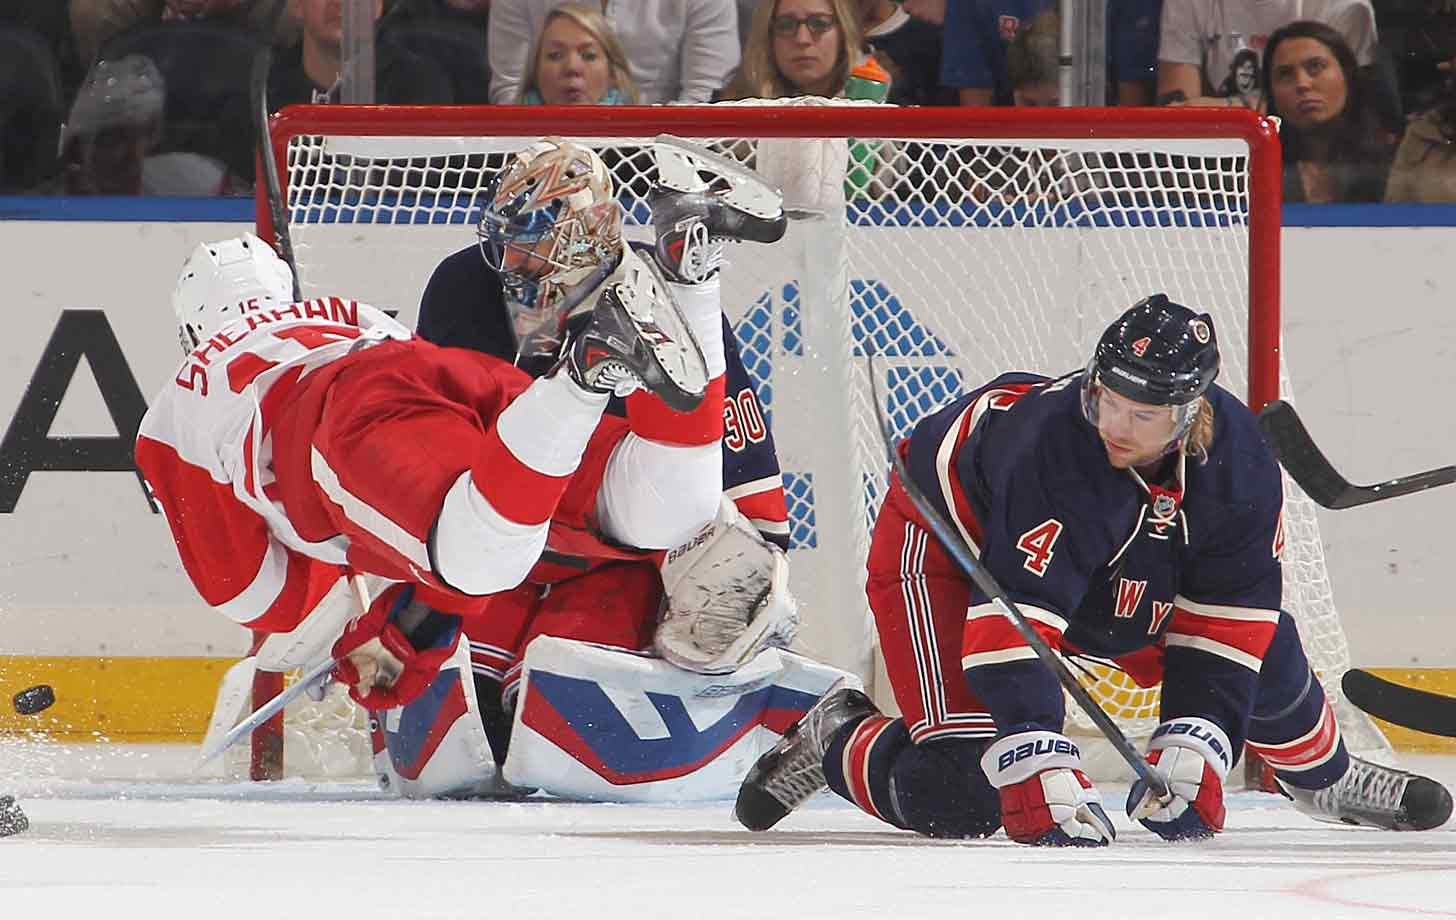 Flying wing: Riley Sheahan of the Red Wings goes airborne like the puck after being tripped by Rangers defenseman Mike Kostka at Madison Square Garden on November 5, 2014.